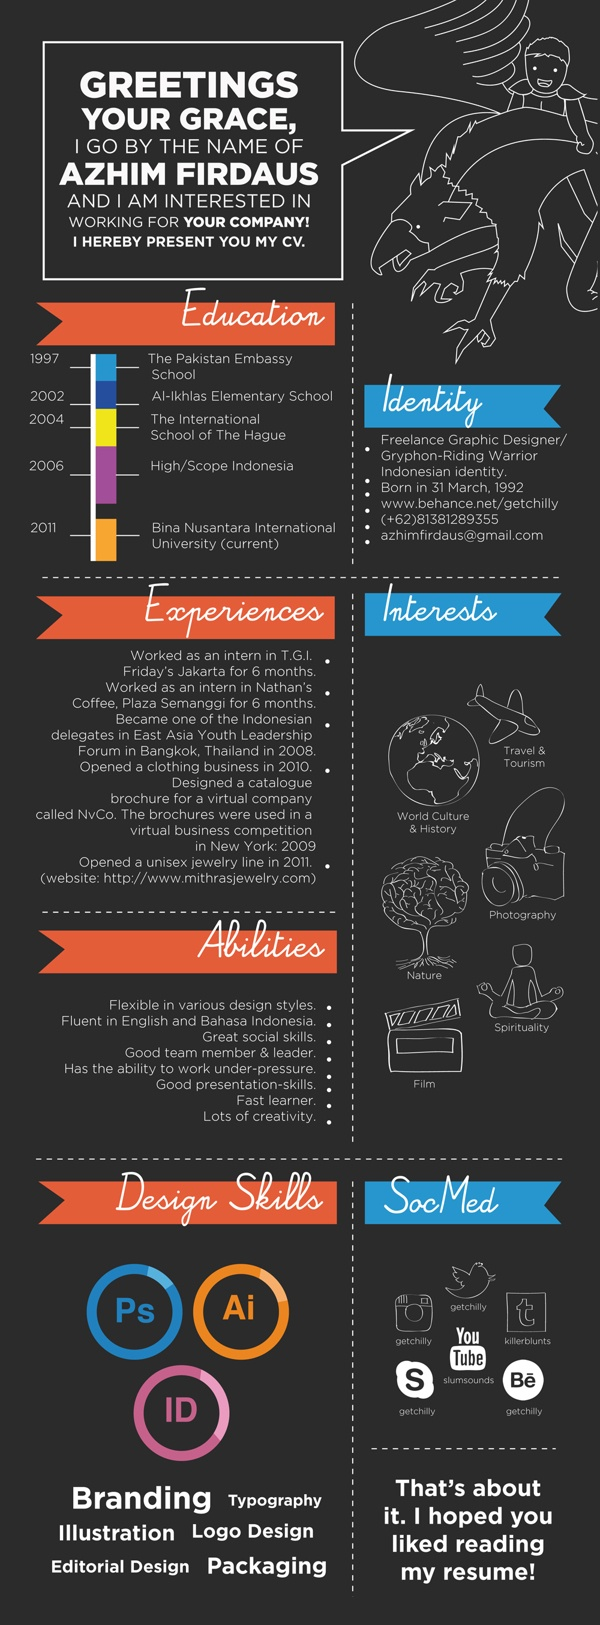 284 best Infographic Resumes images on Pinterest | Infographic ...